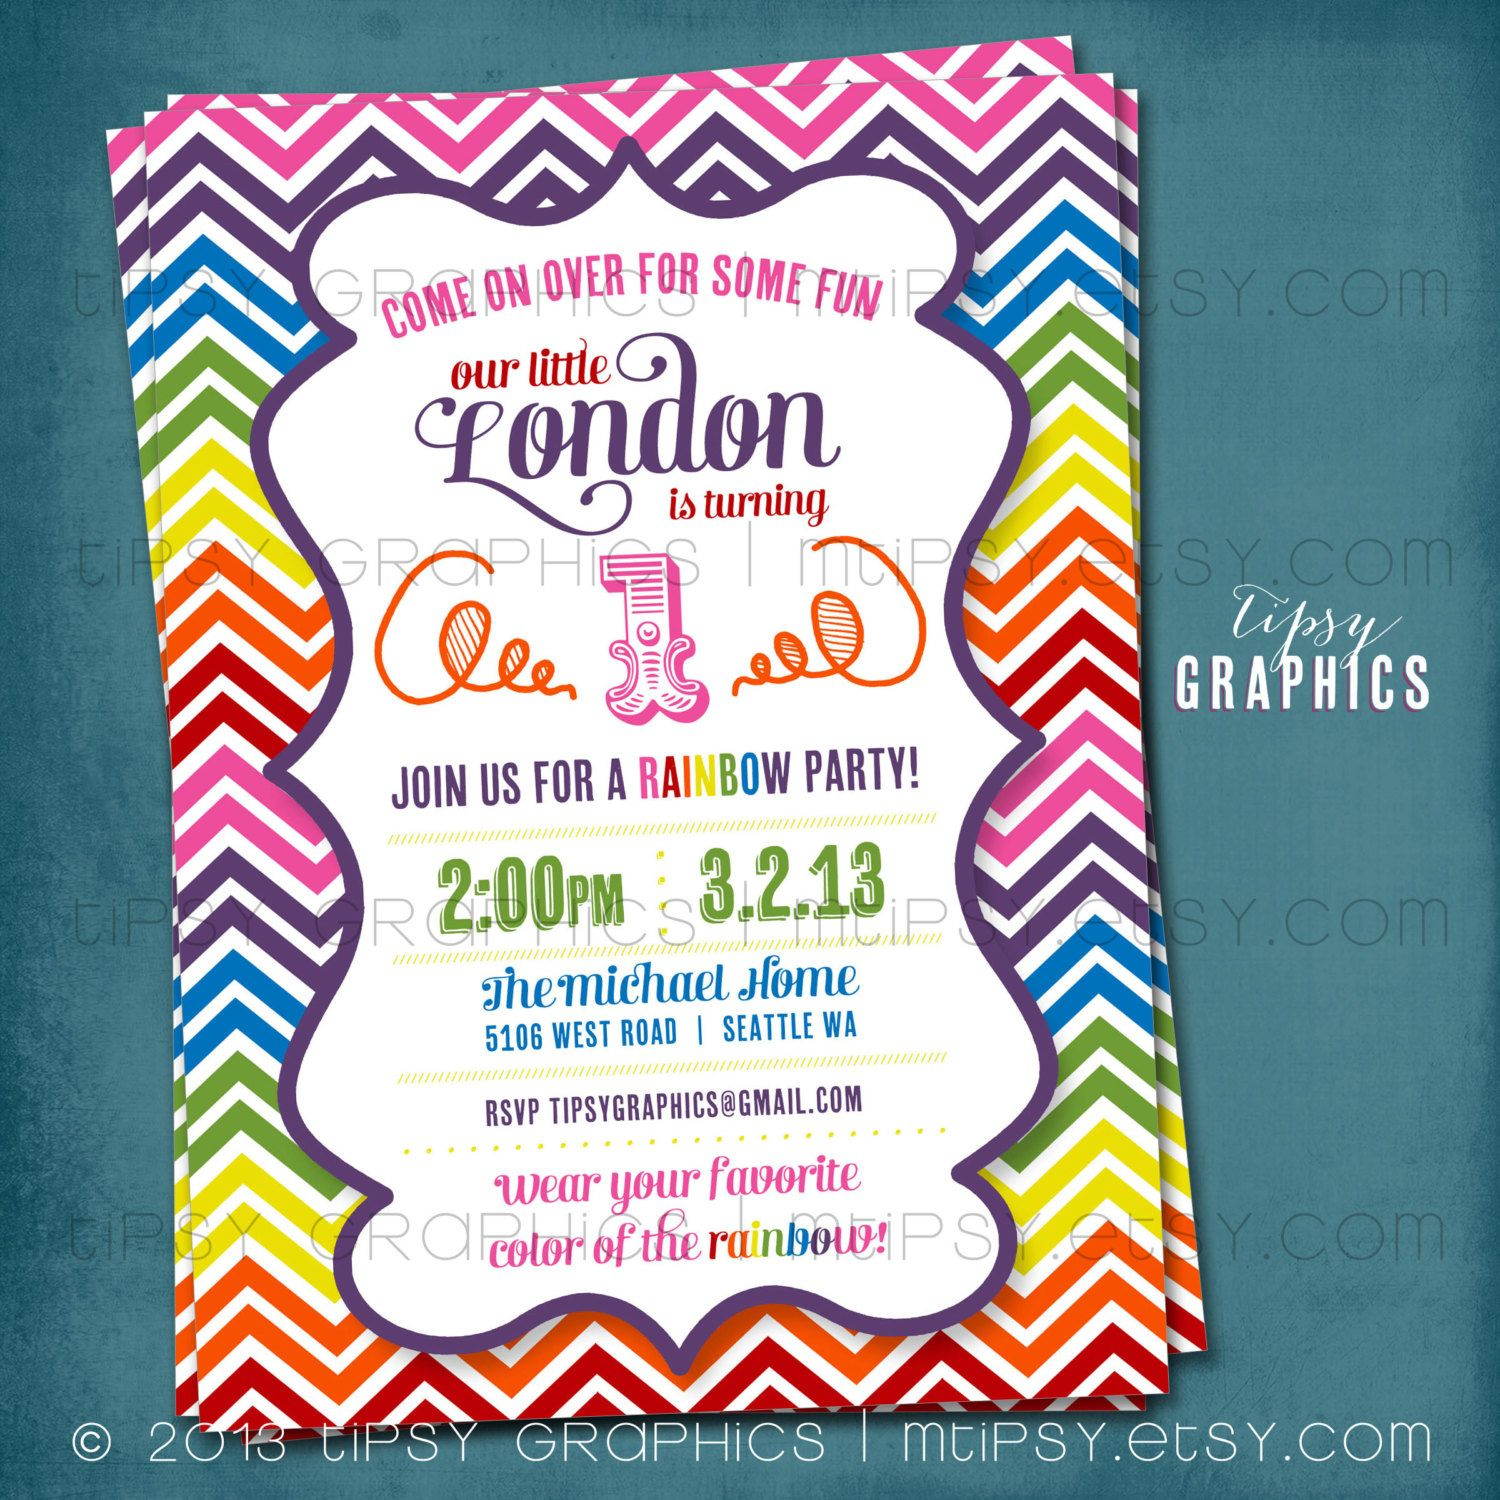 Invite idea party ideas Pinterest